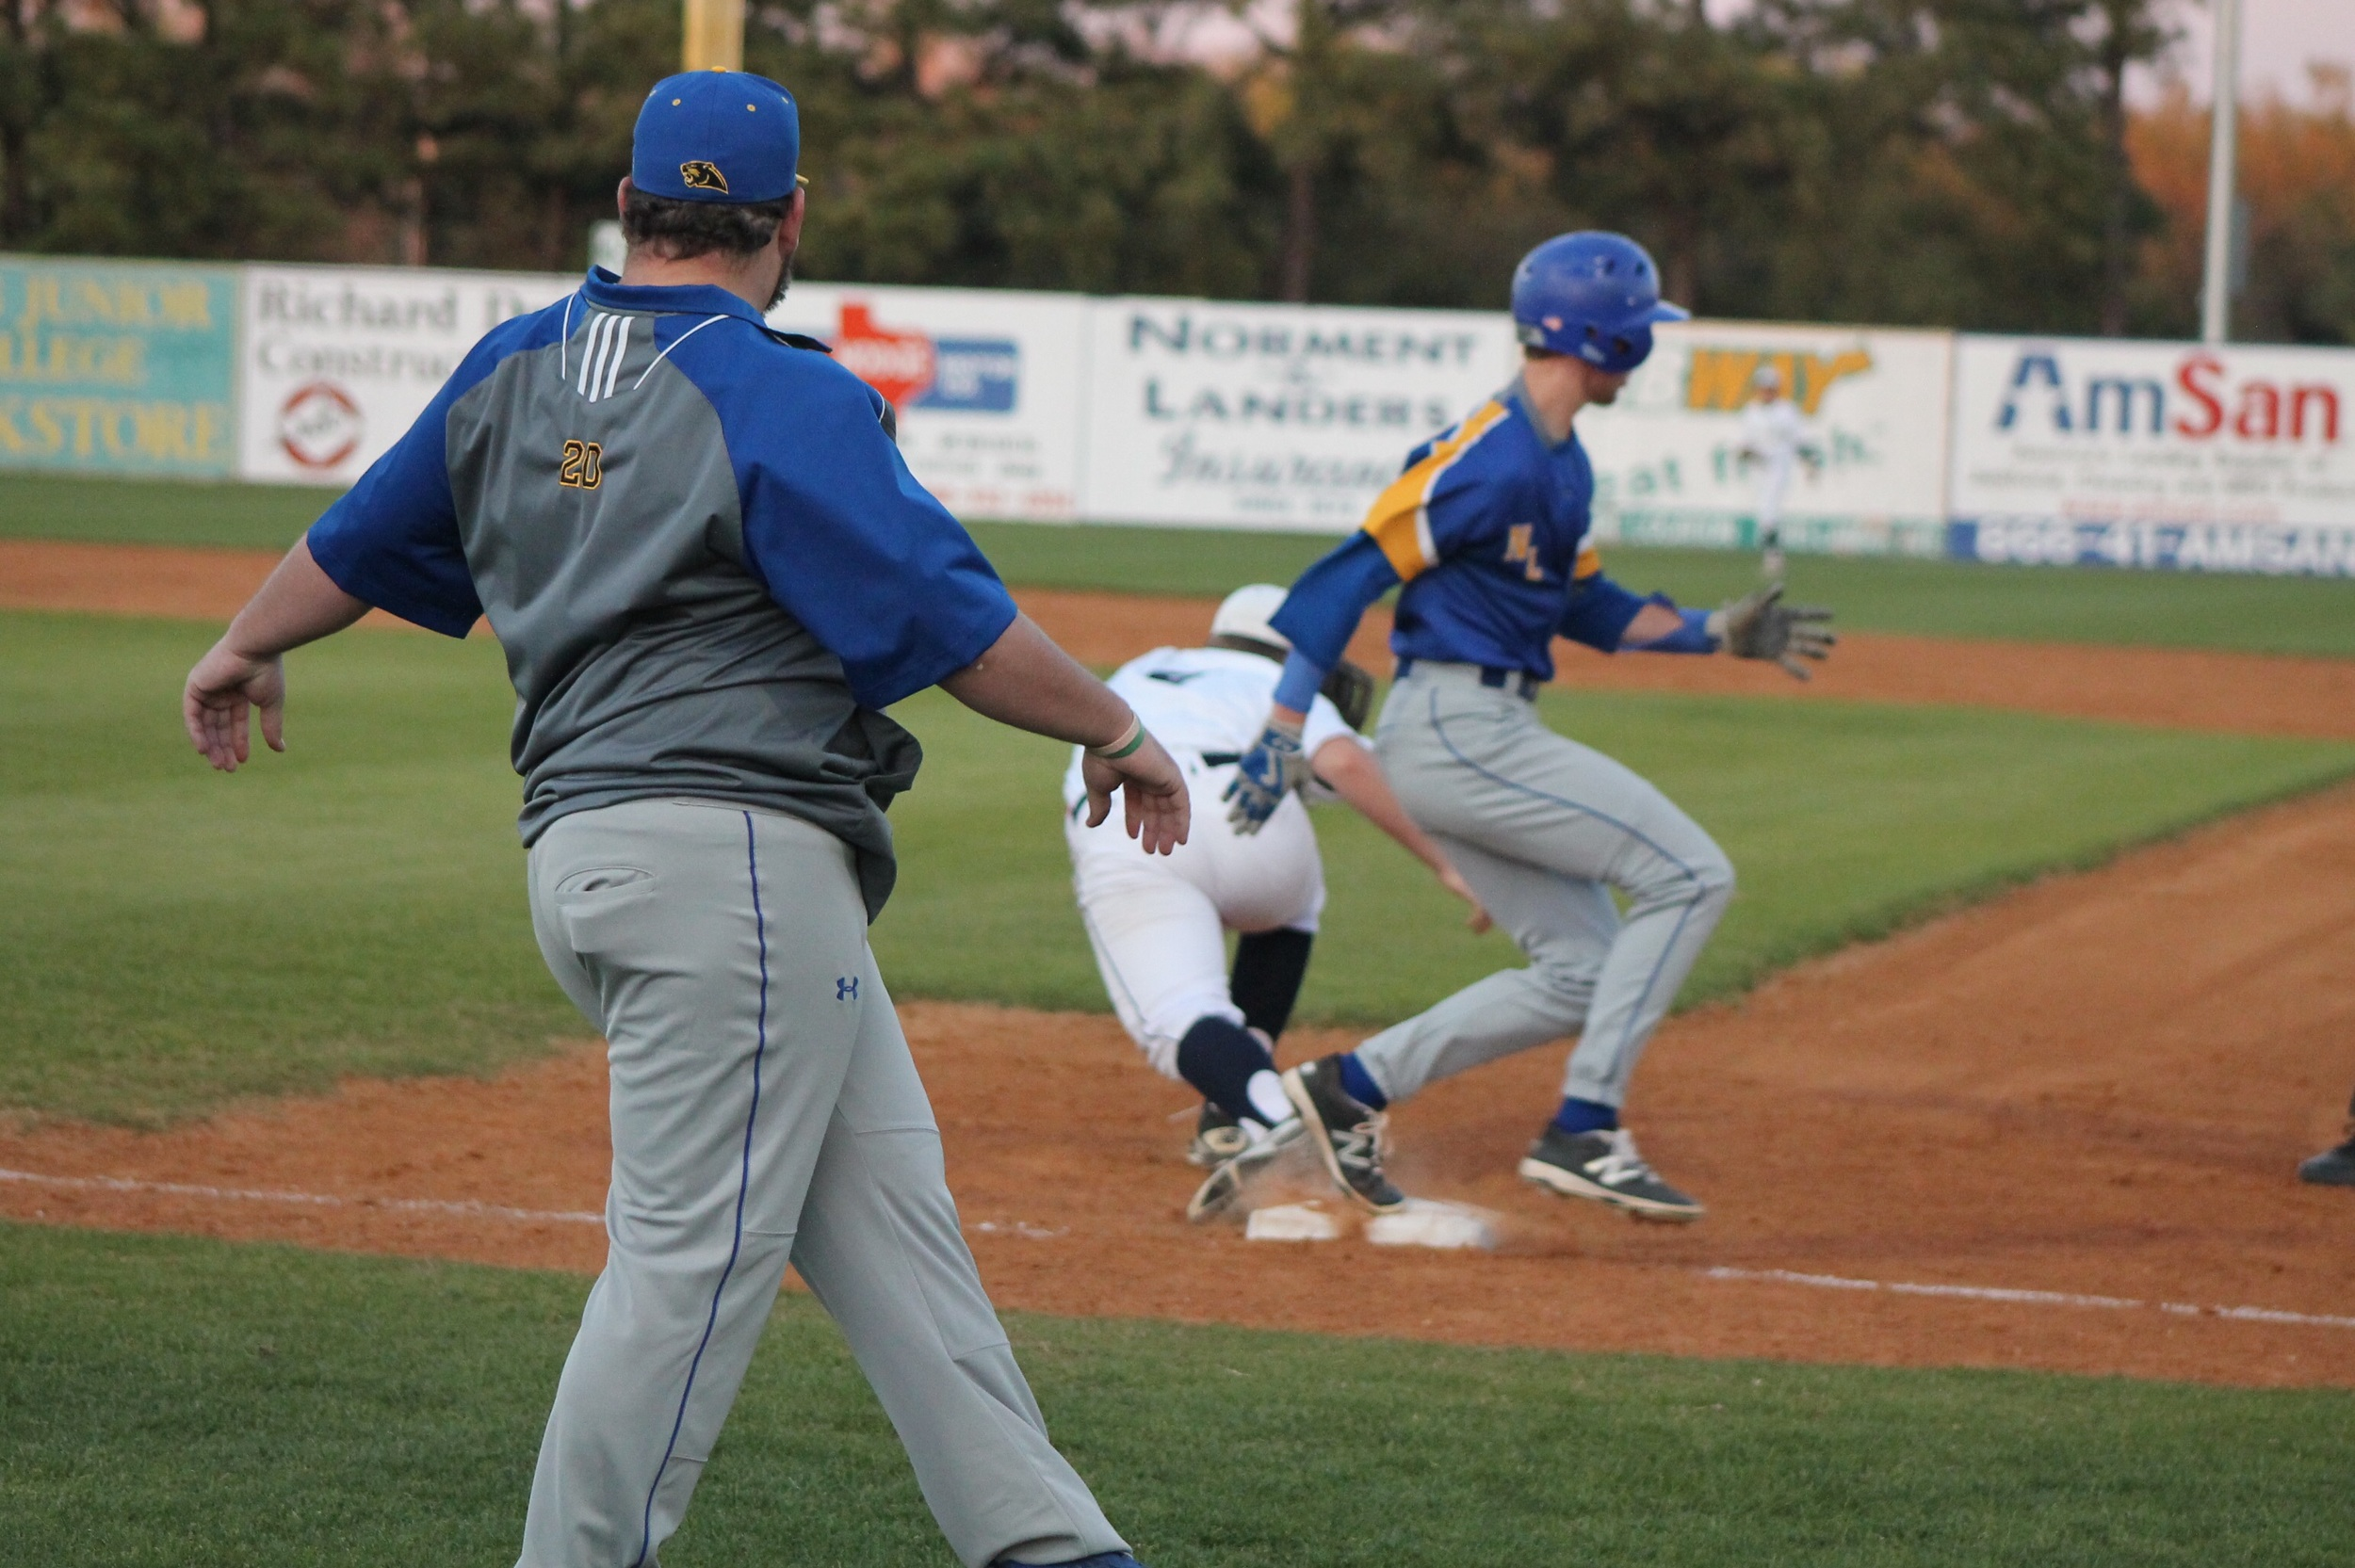 (Photo by Adam Routon) Trey Scudder beating out a grounder earlier in the year.